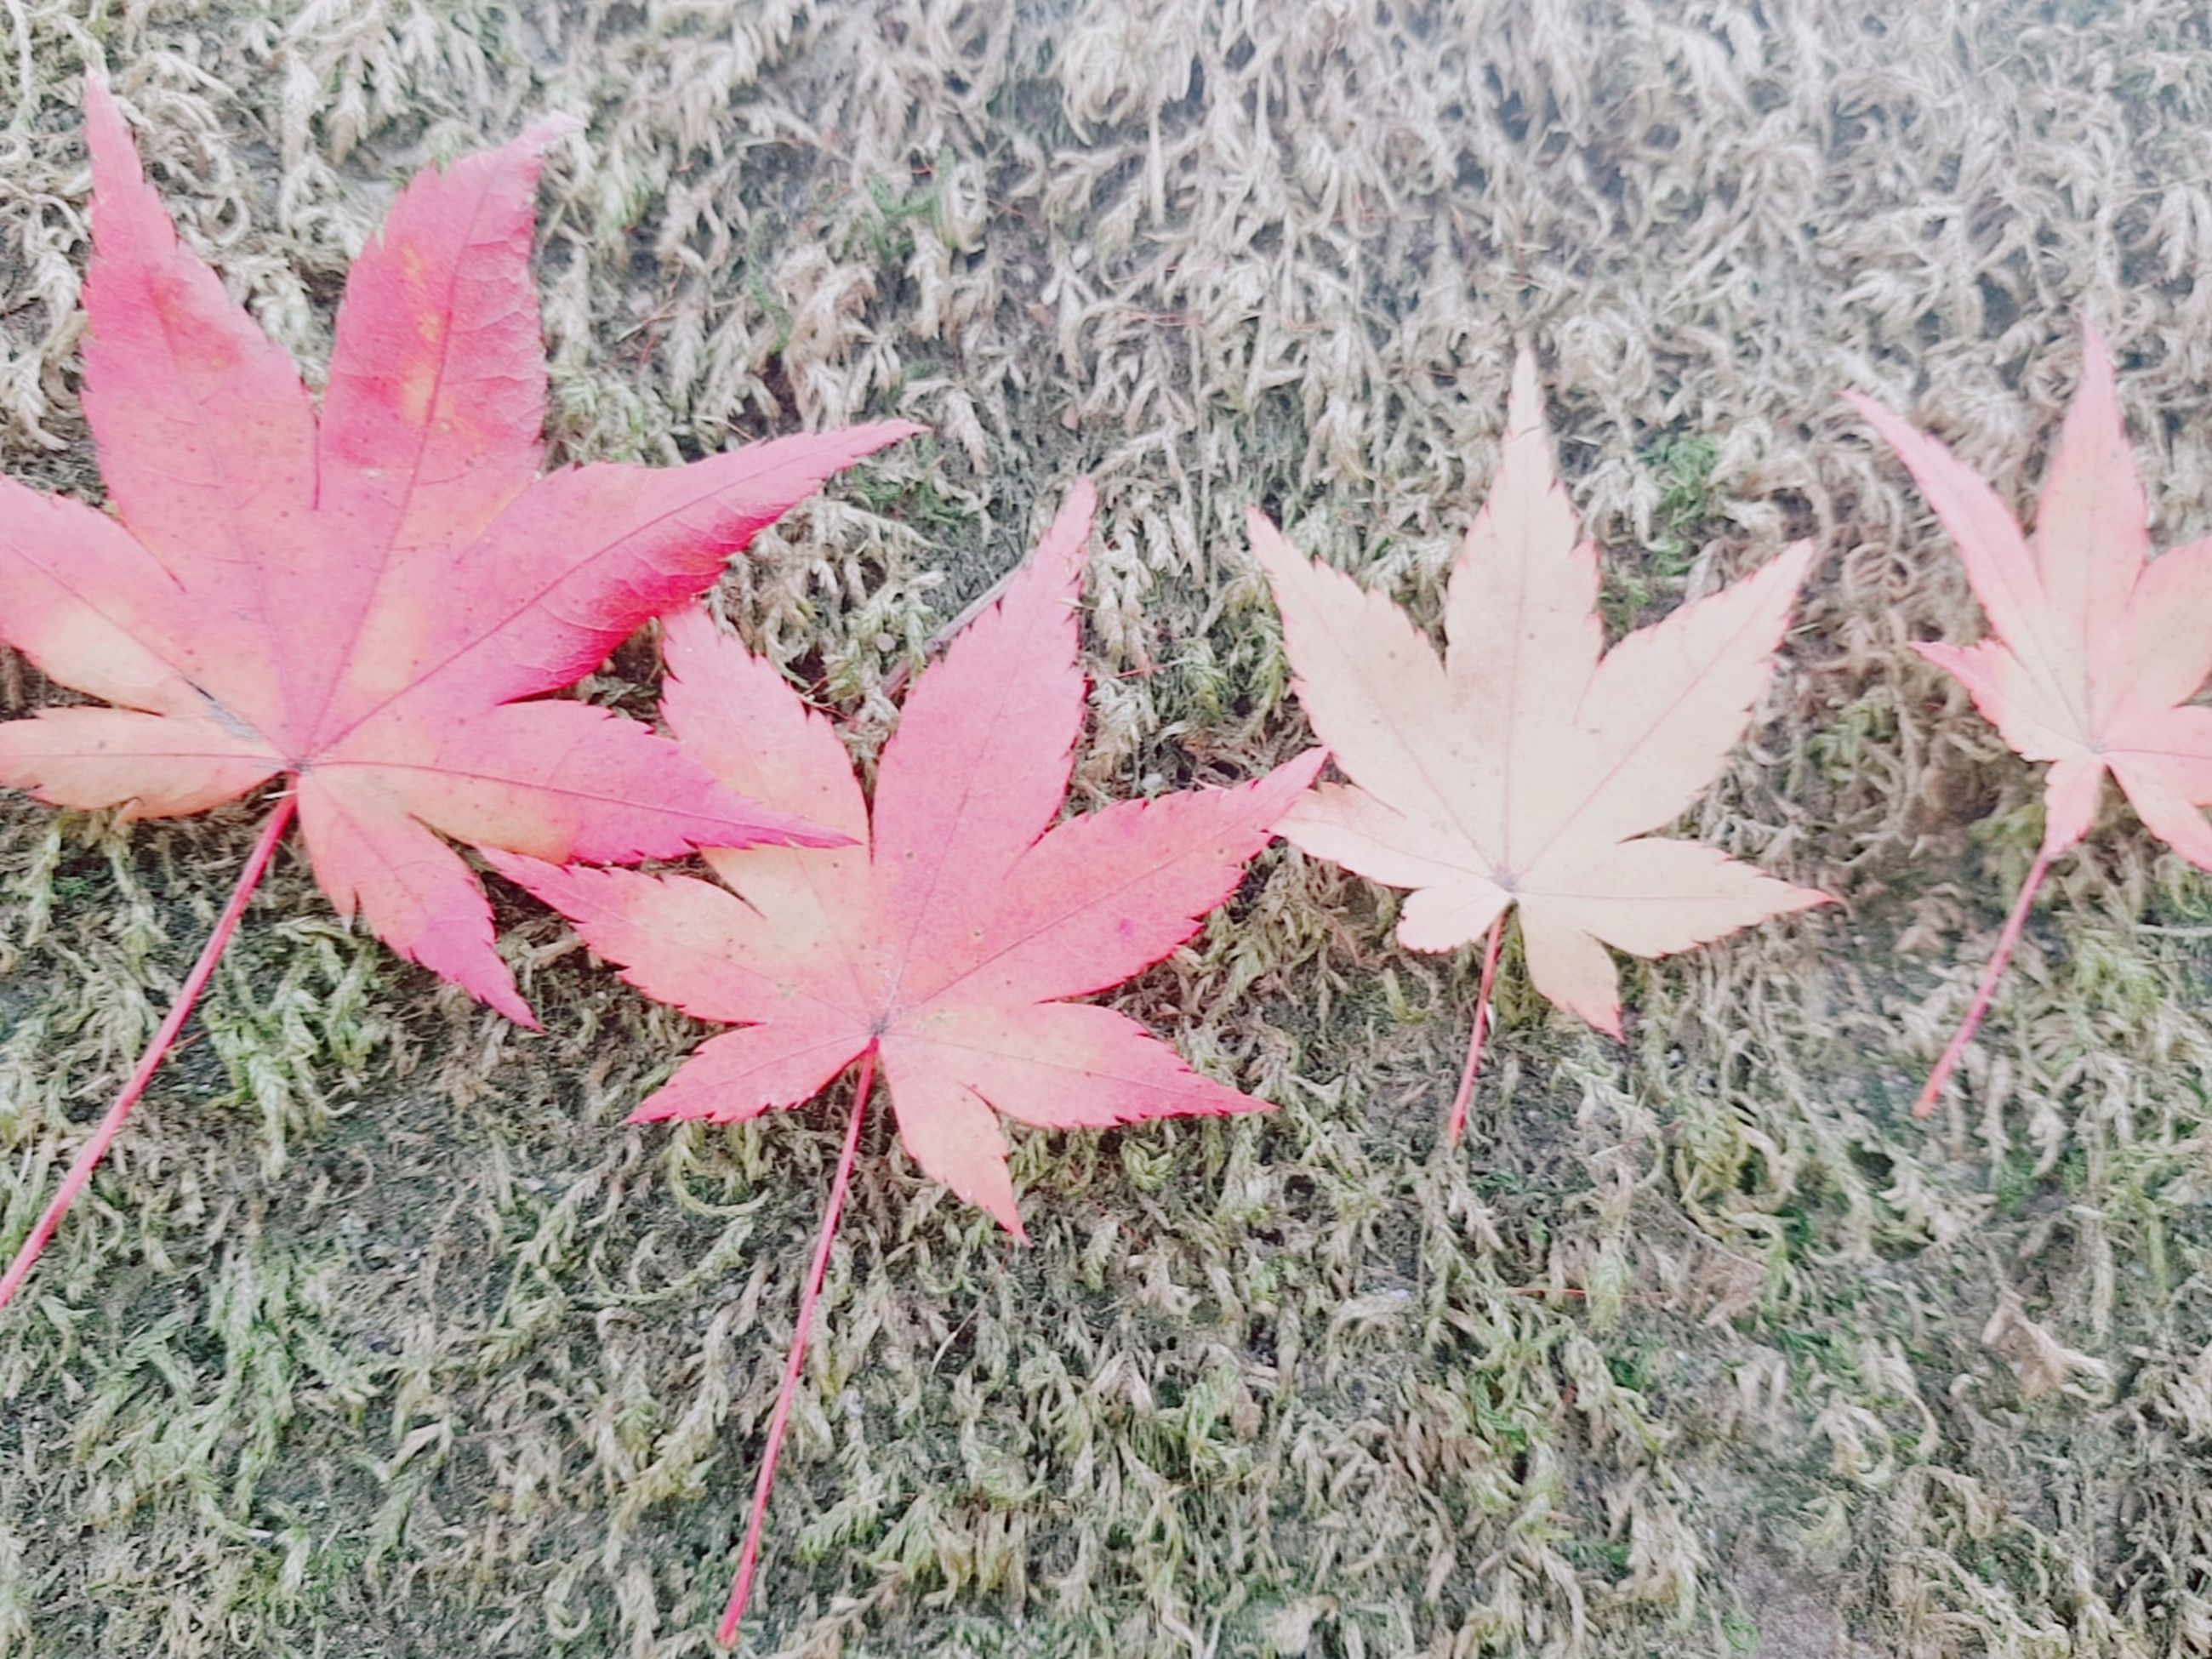 leaf, plant, plant part, close-up, beauty in nature, growth, nature, day, no people, autumn, change, high angle view, outdoors, leaves, vulnerability, land, fragility, maple leaf, field, pink color, natural condition